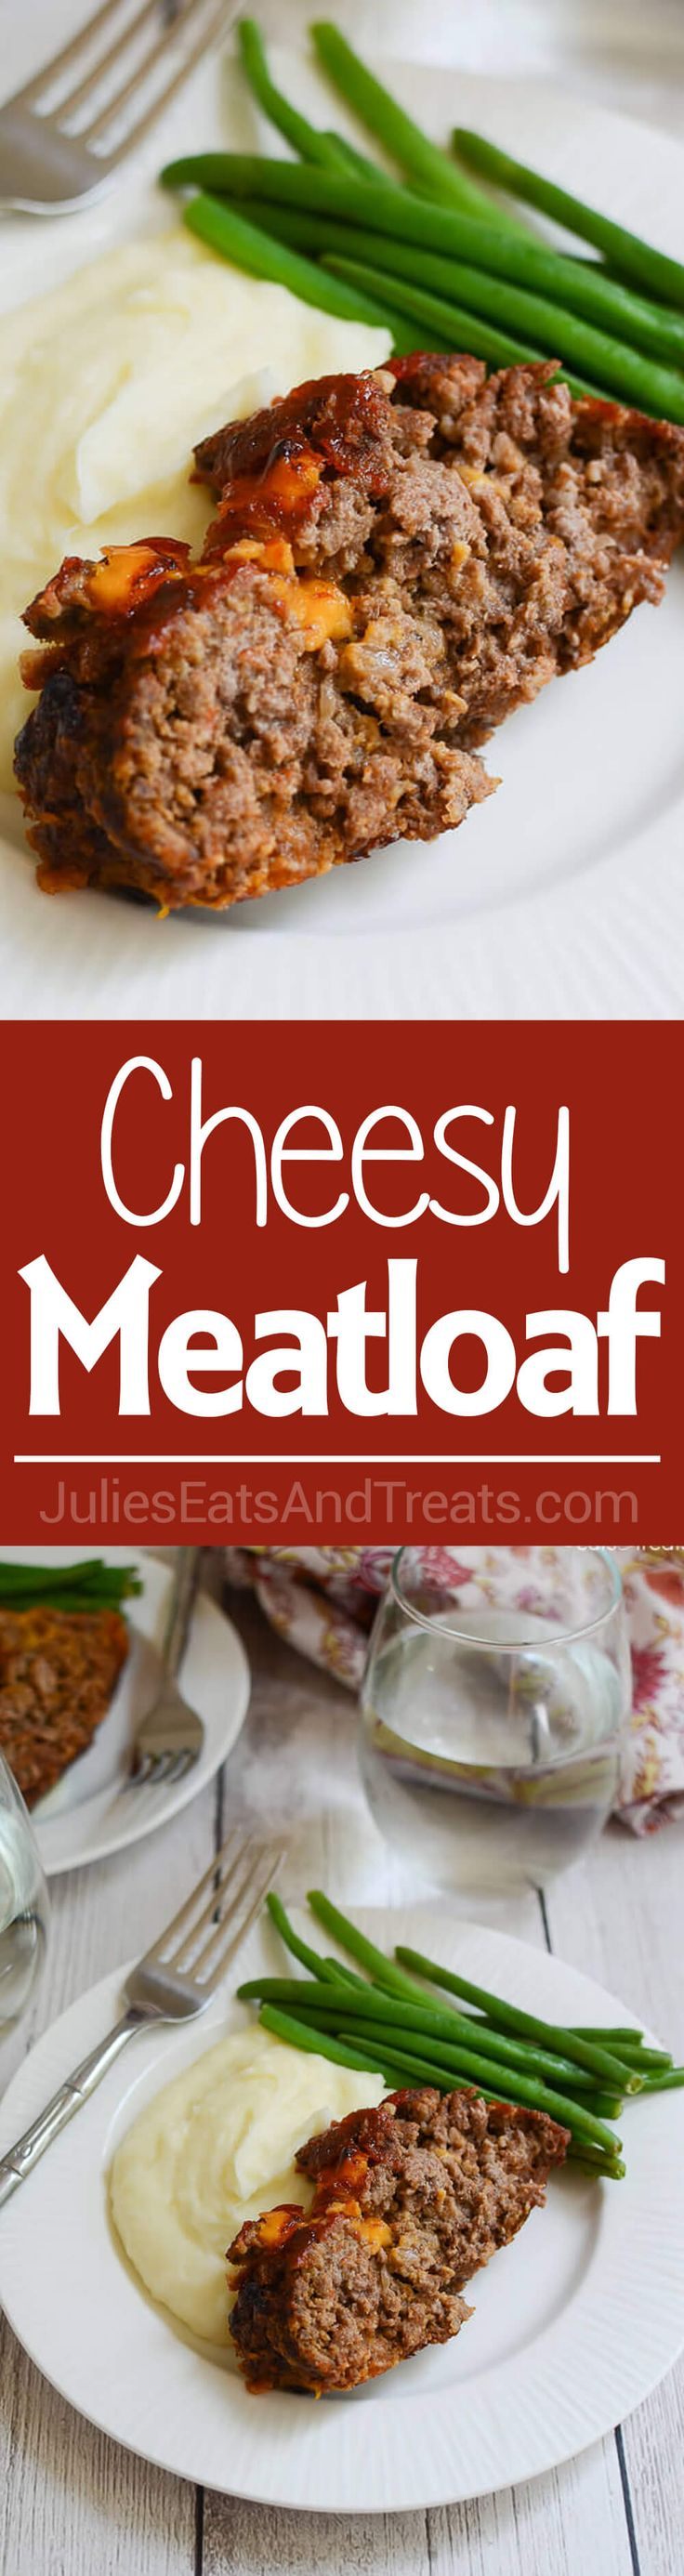 Cheesy Meatloaf ~ Delicious, Homemade Meatloaf just like Grandma Makes! Plus…